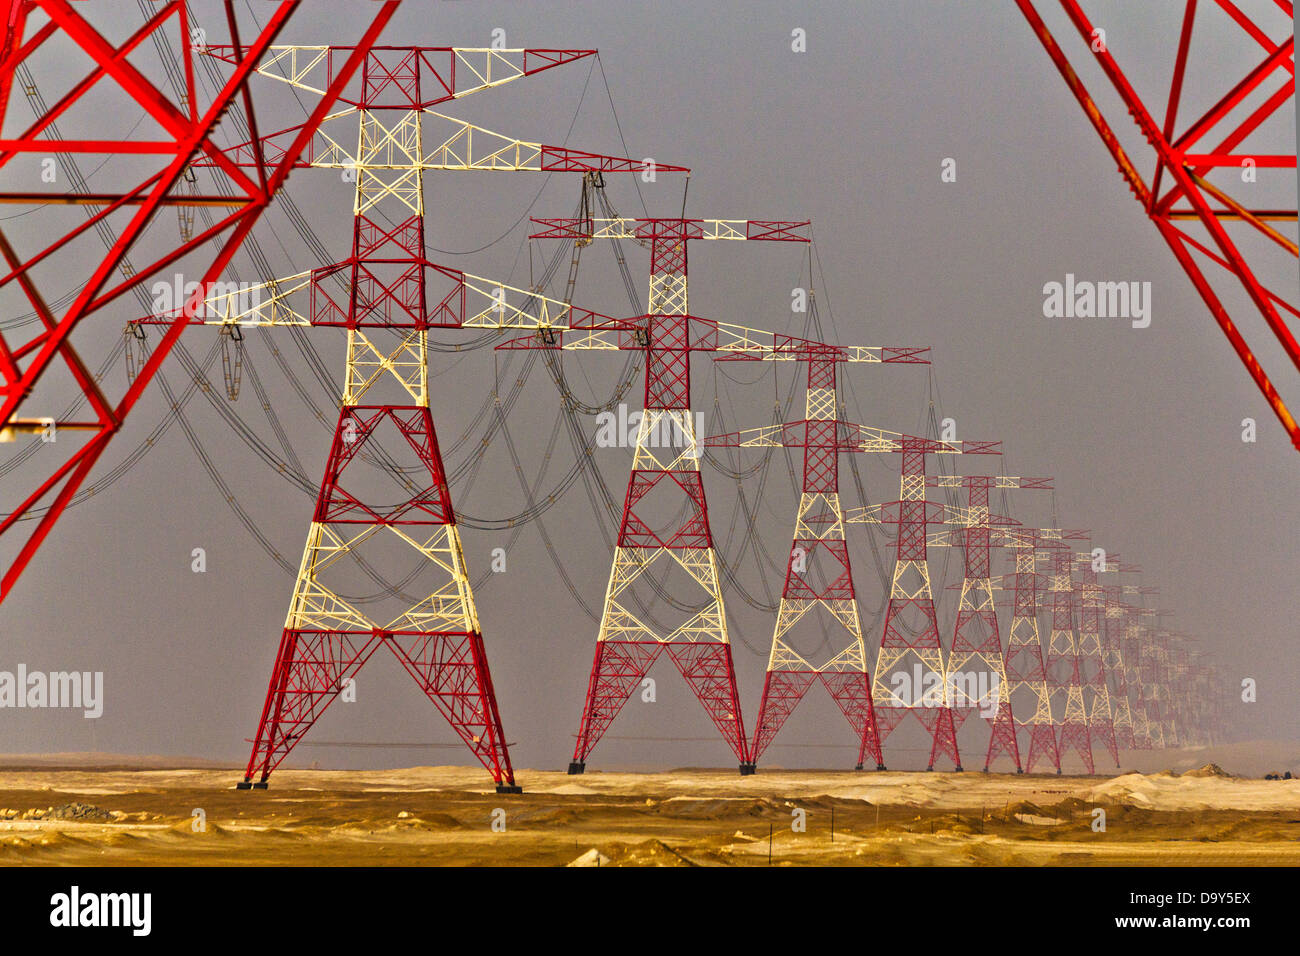 High voltage pylons in a perfect alignment crossing the desert. - Stock Image